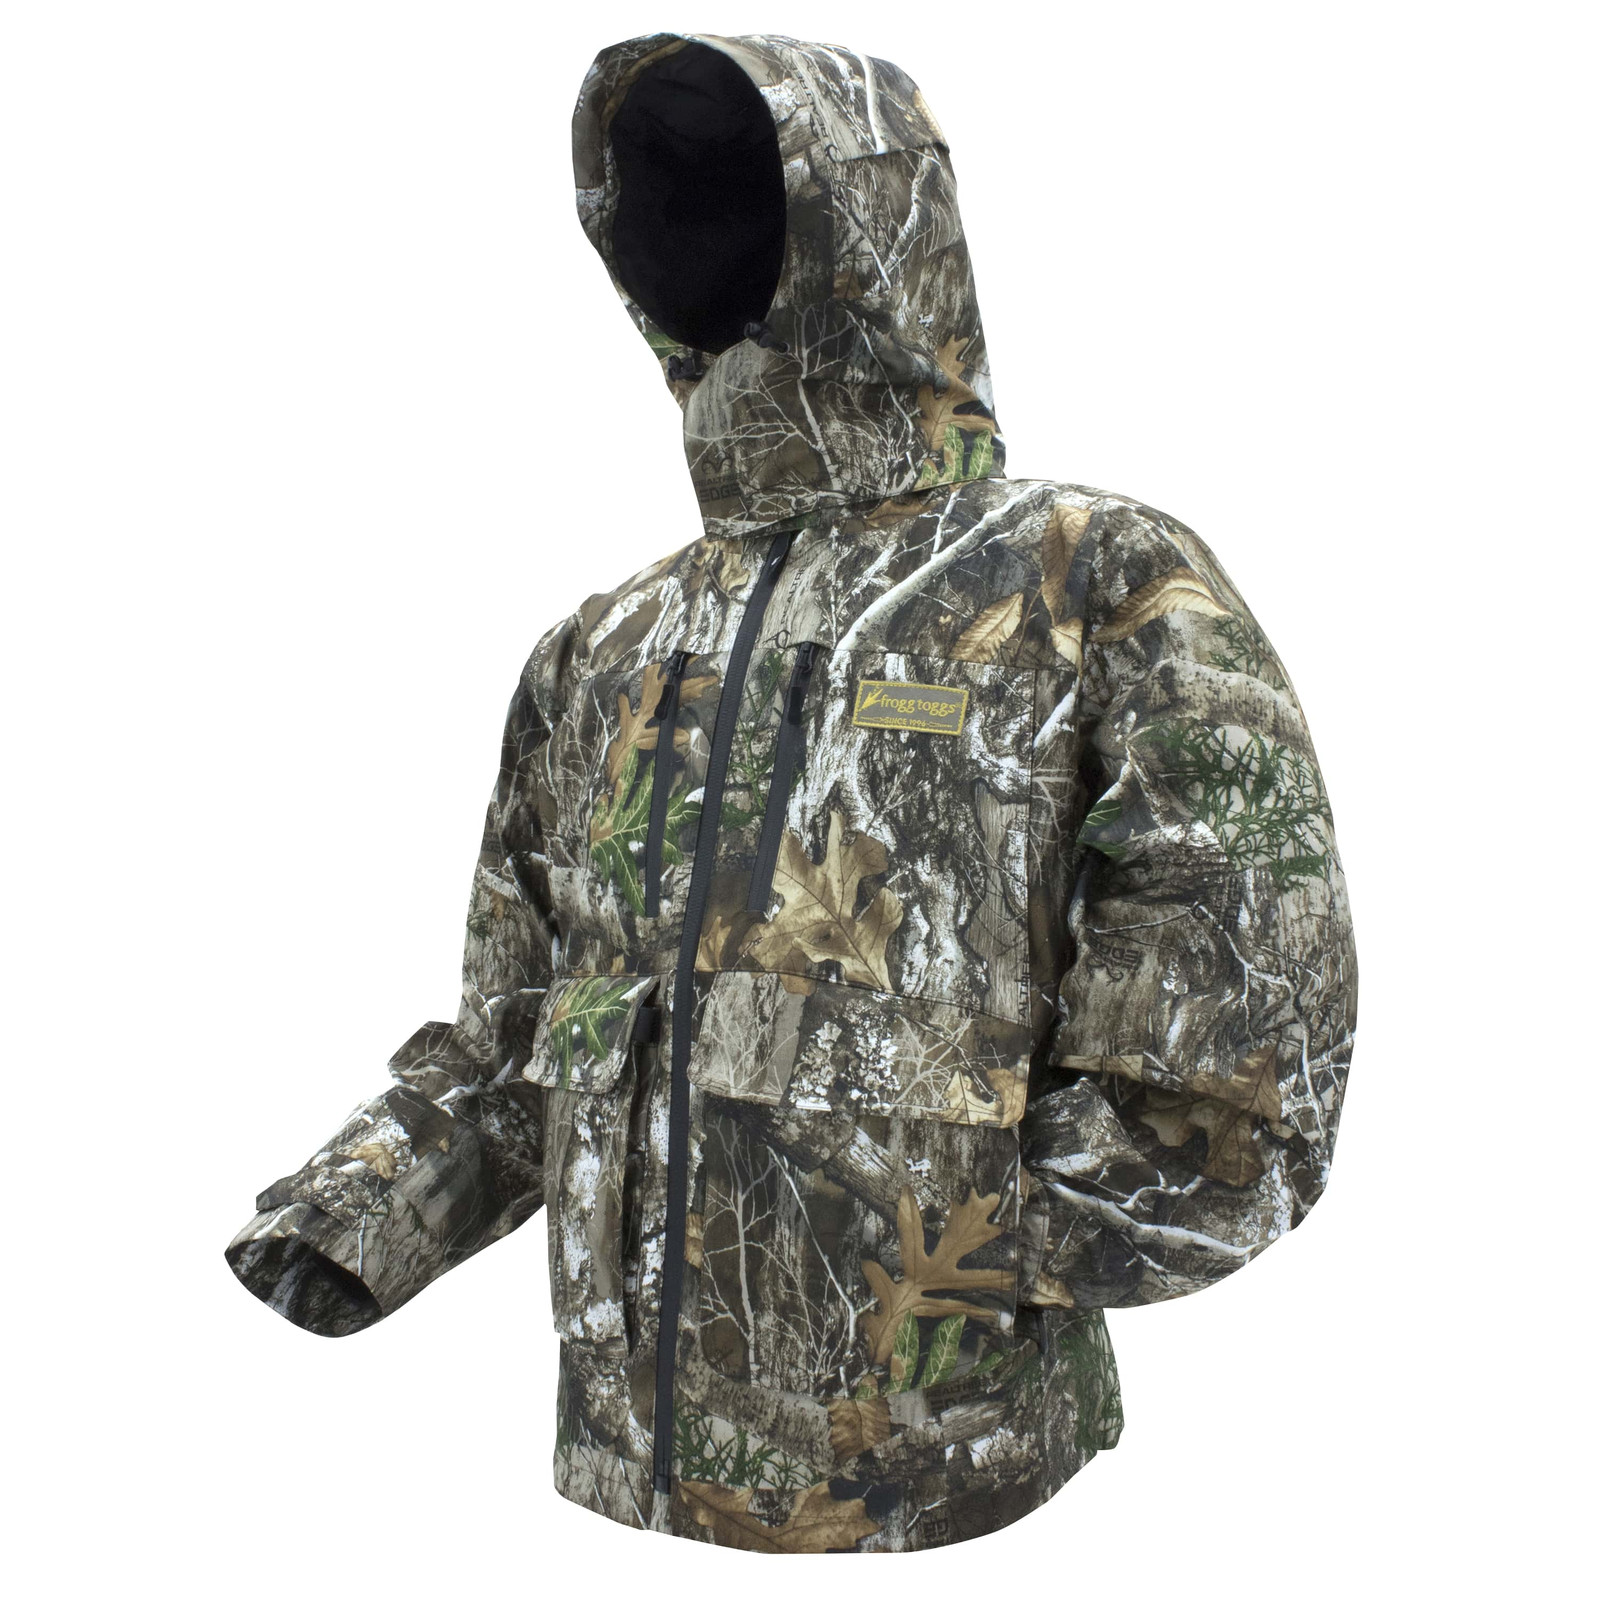 PFW63161_Realtree Edge_thumbnail-large